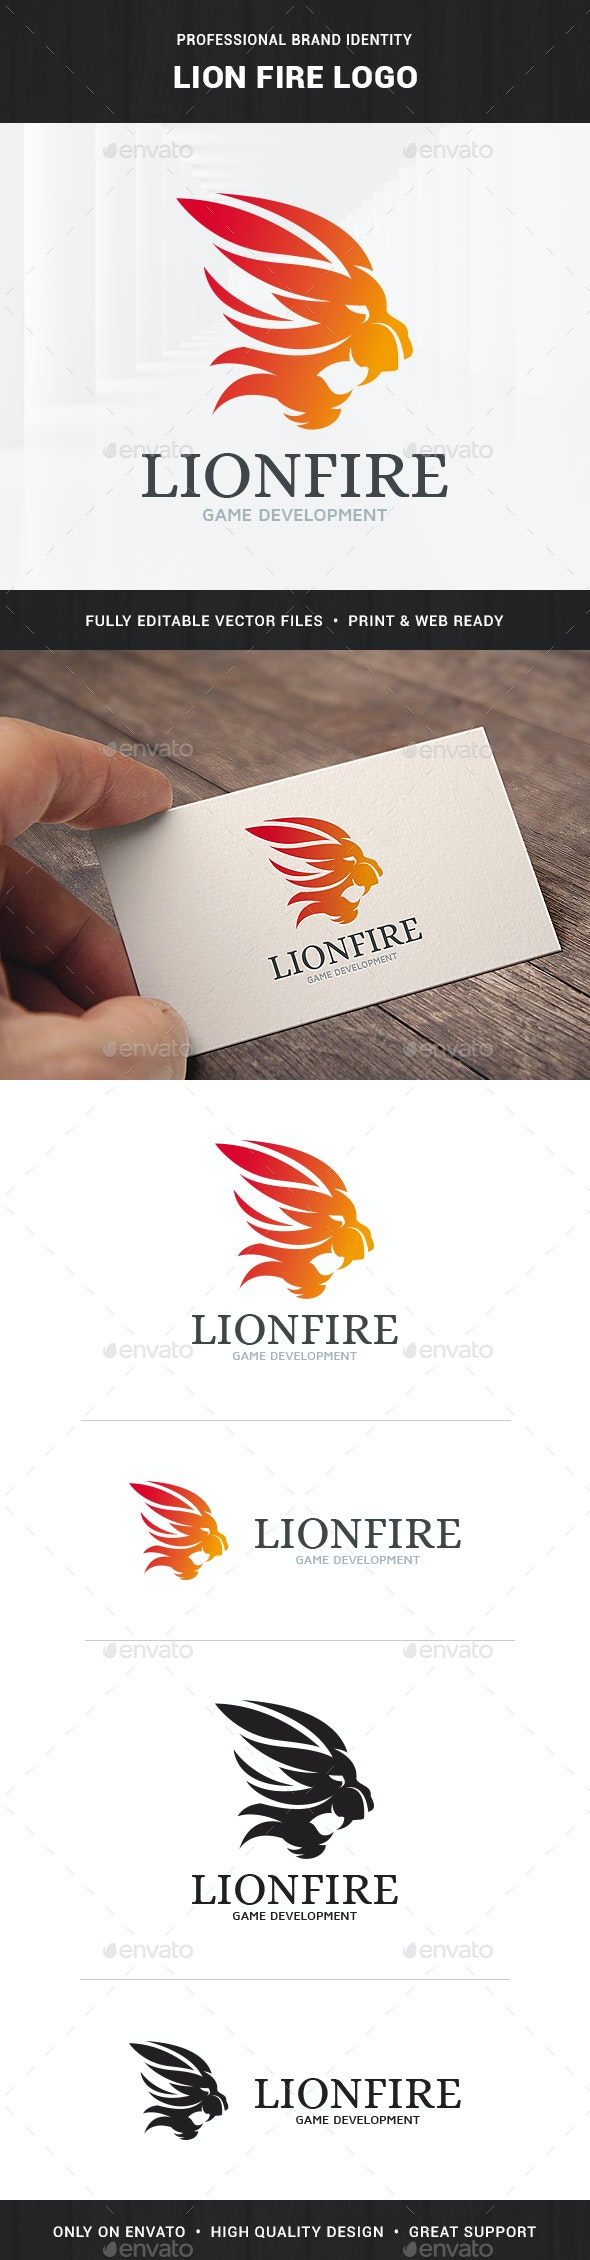 Lion Fire Logo Template - Animals Logo Templates